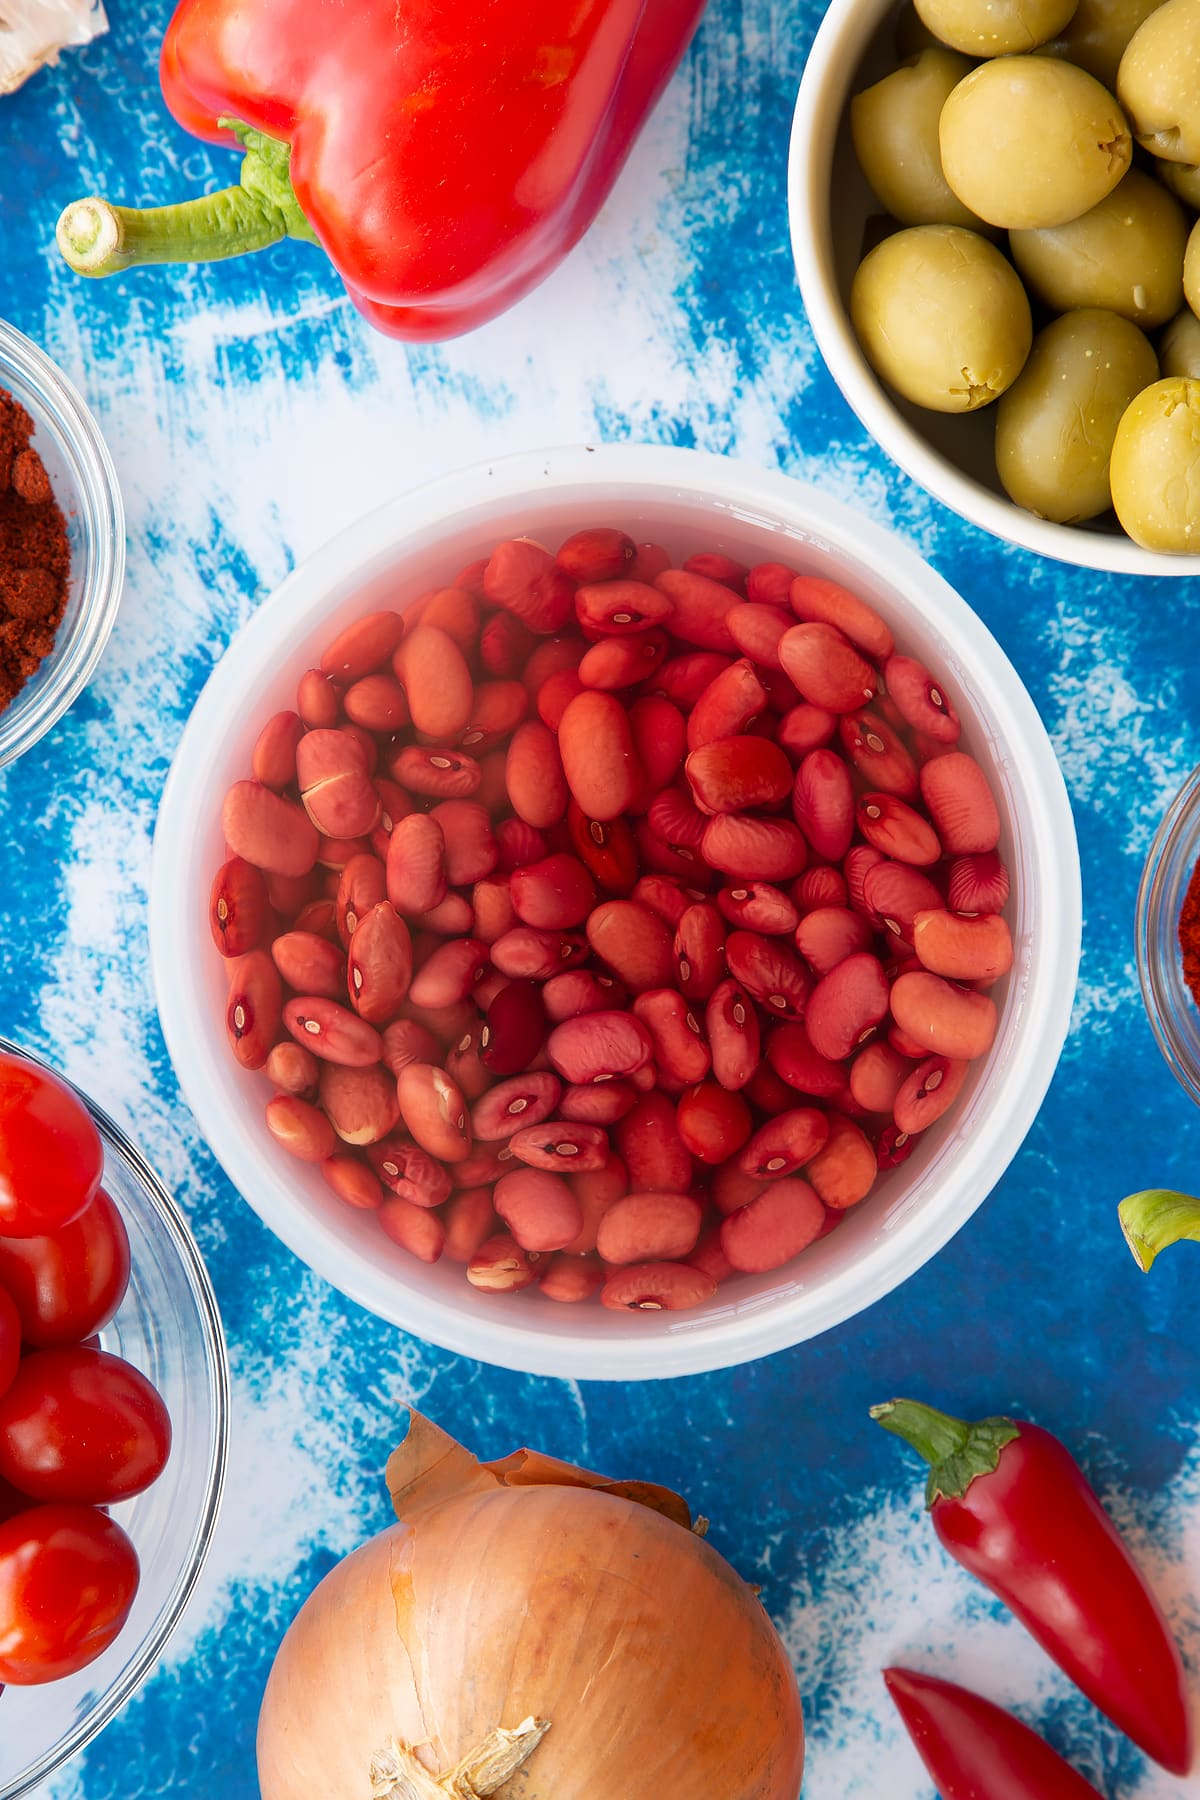 Soaked kidney beans in a small pot. Ingredients to make easy Spanish rice and beans surround the pot.